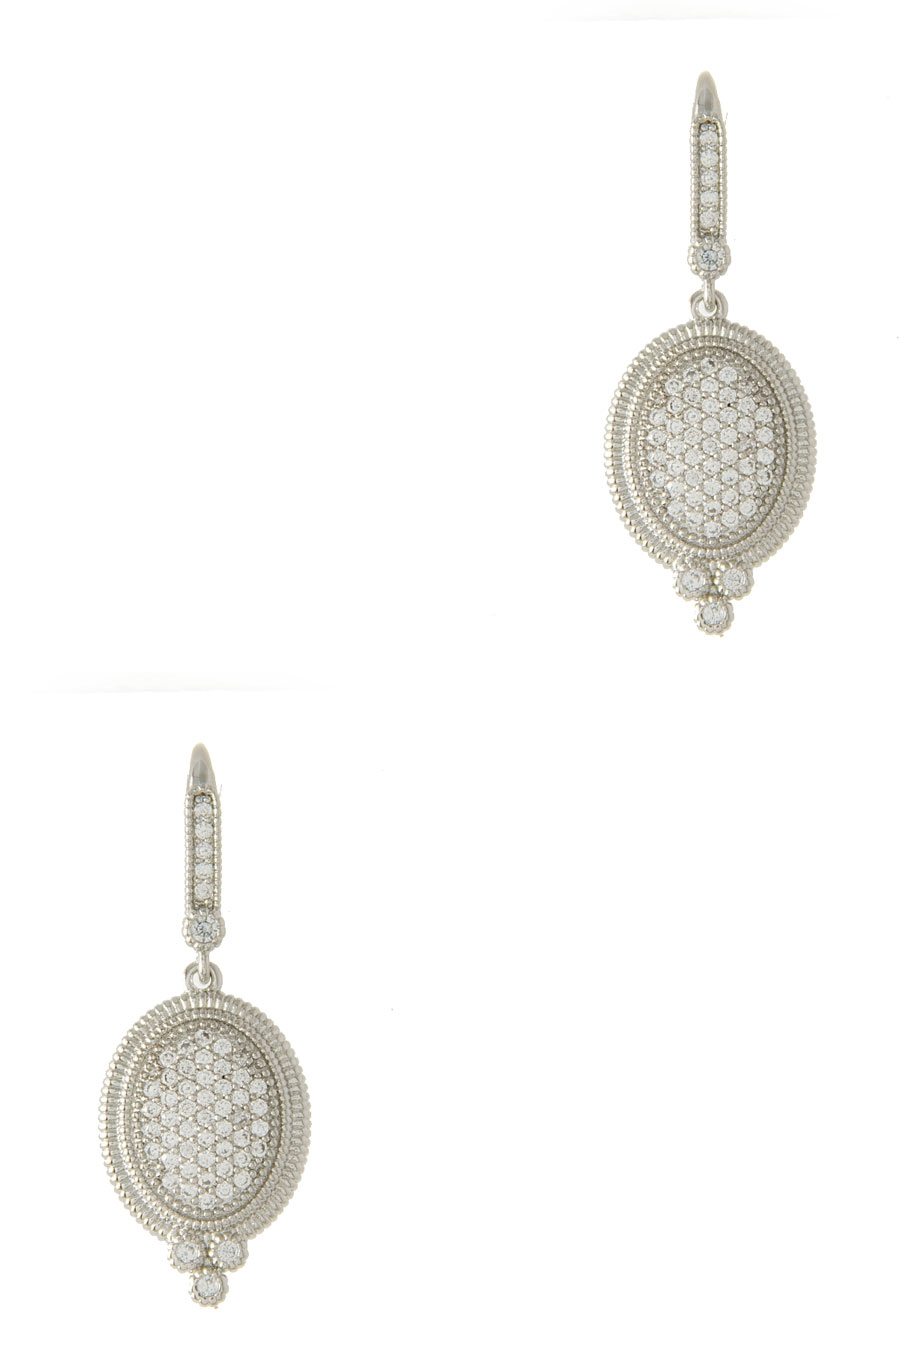 OVAL CRYSTAL PAVE EARRING - orangeshine.com